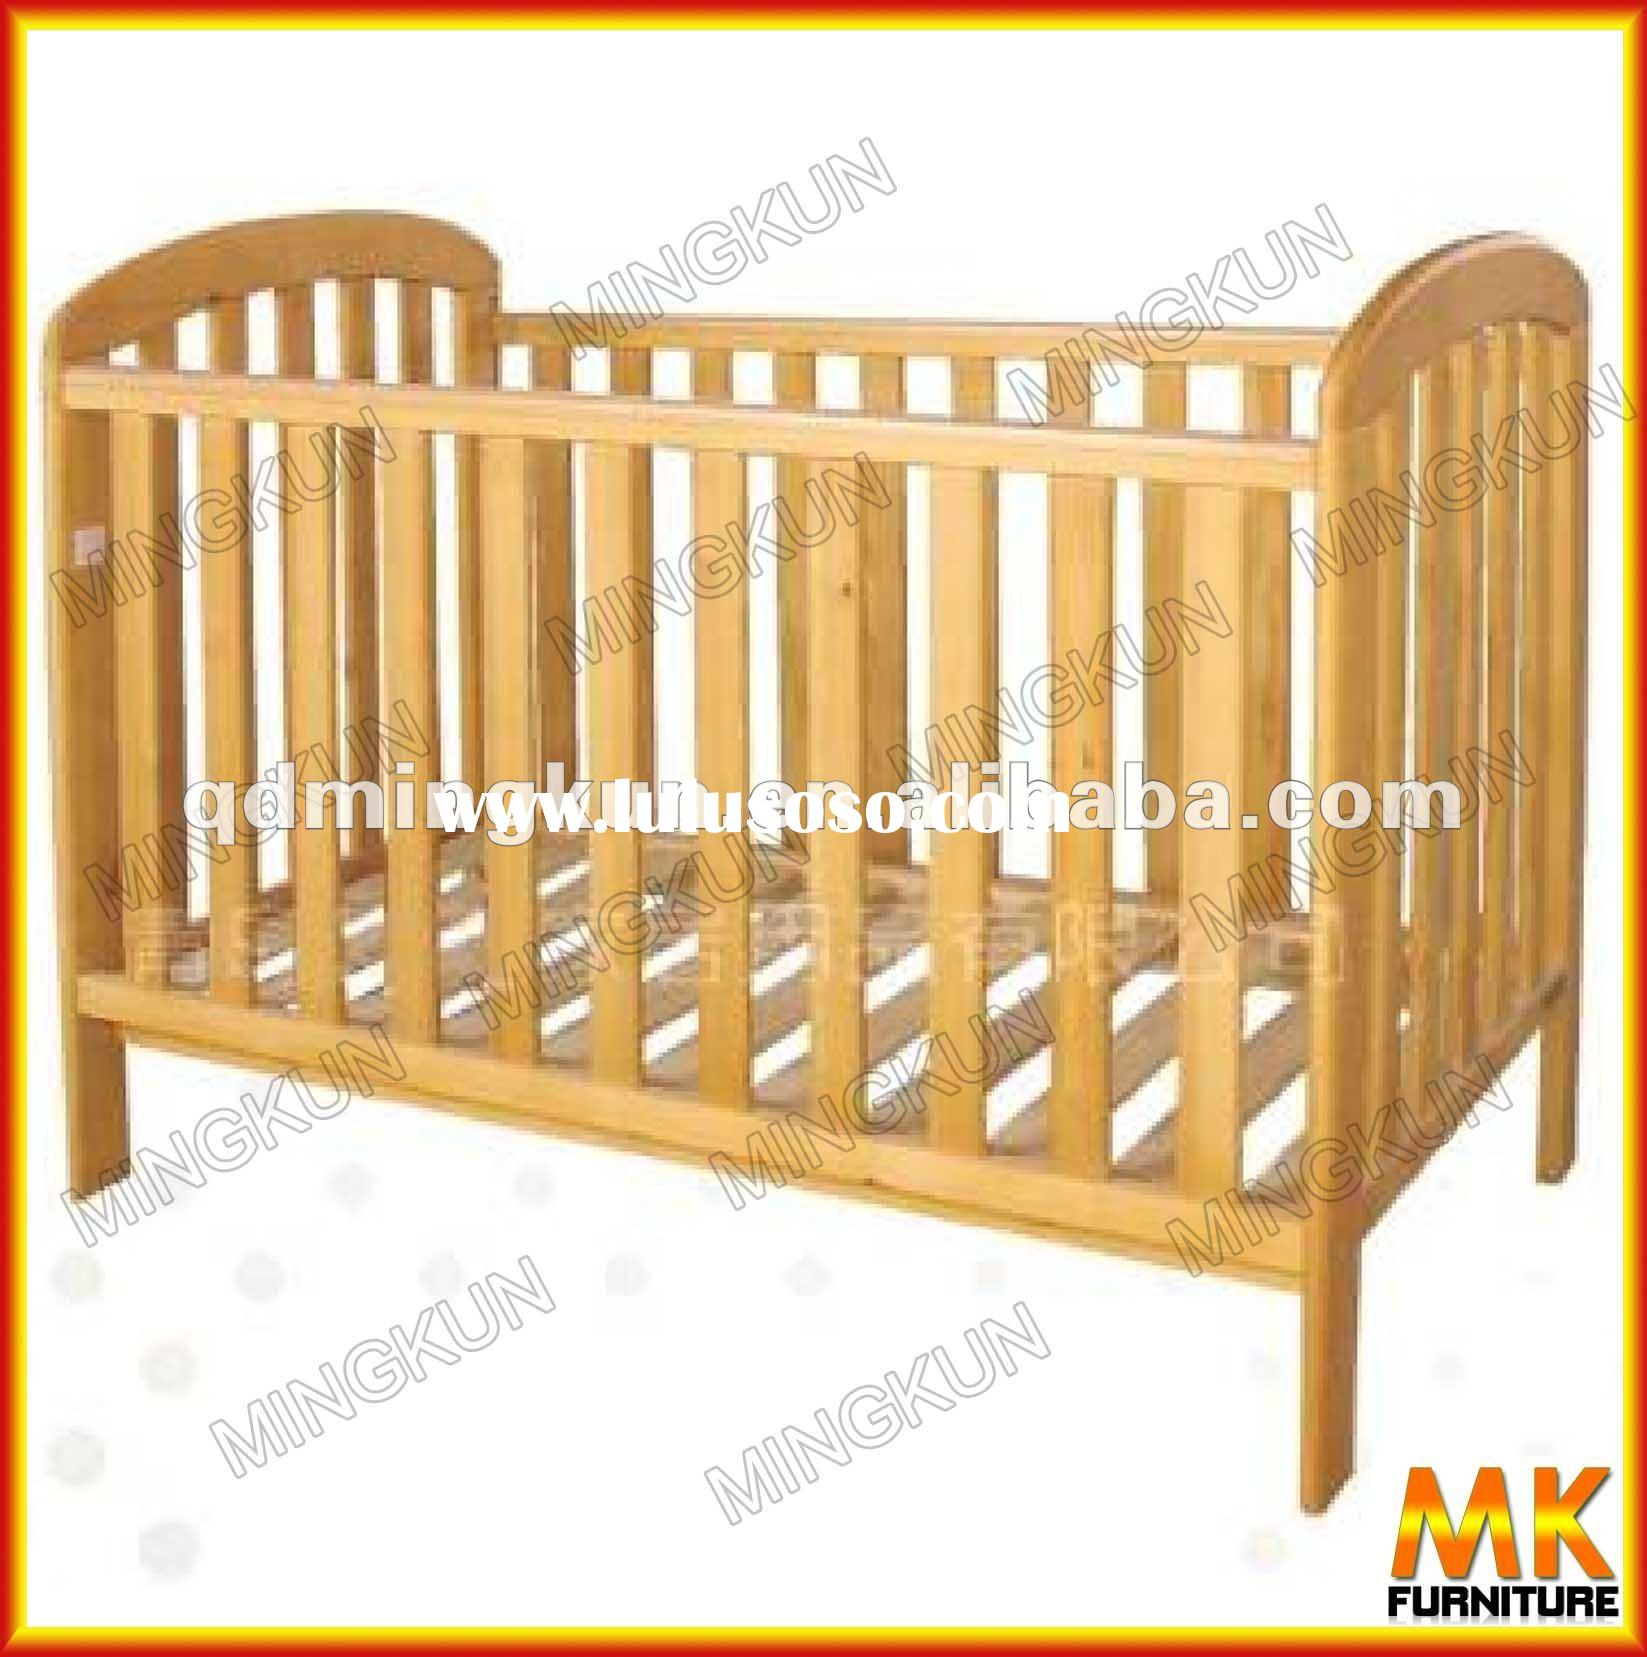 How To Build A Baby Crib Step By Step Plans Diy Free